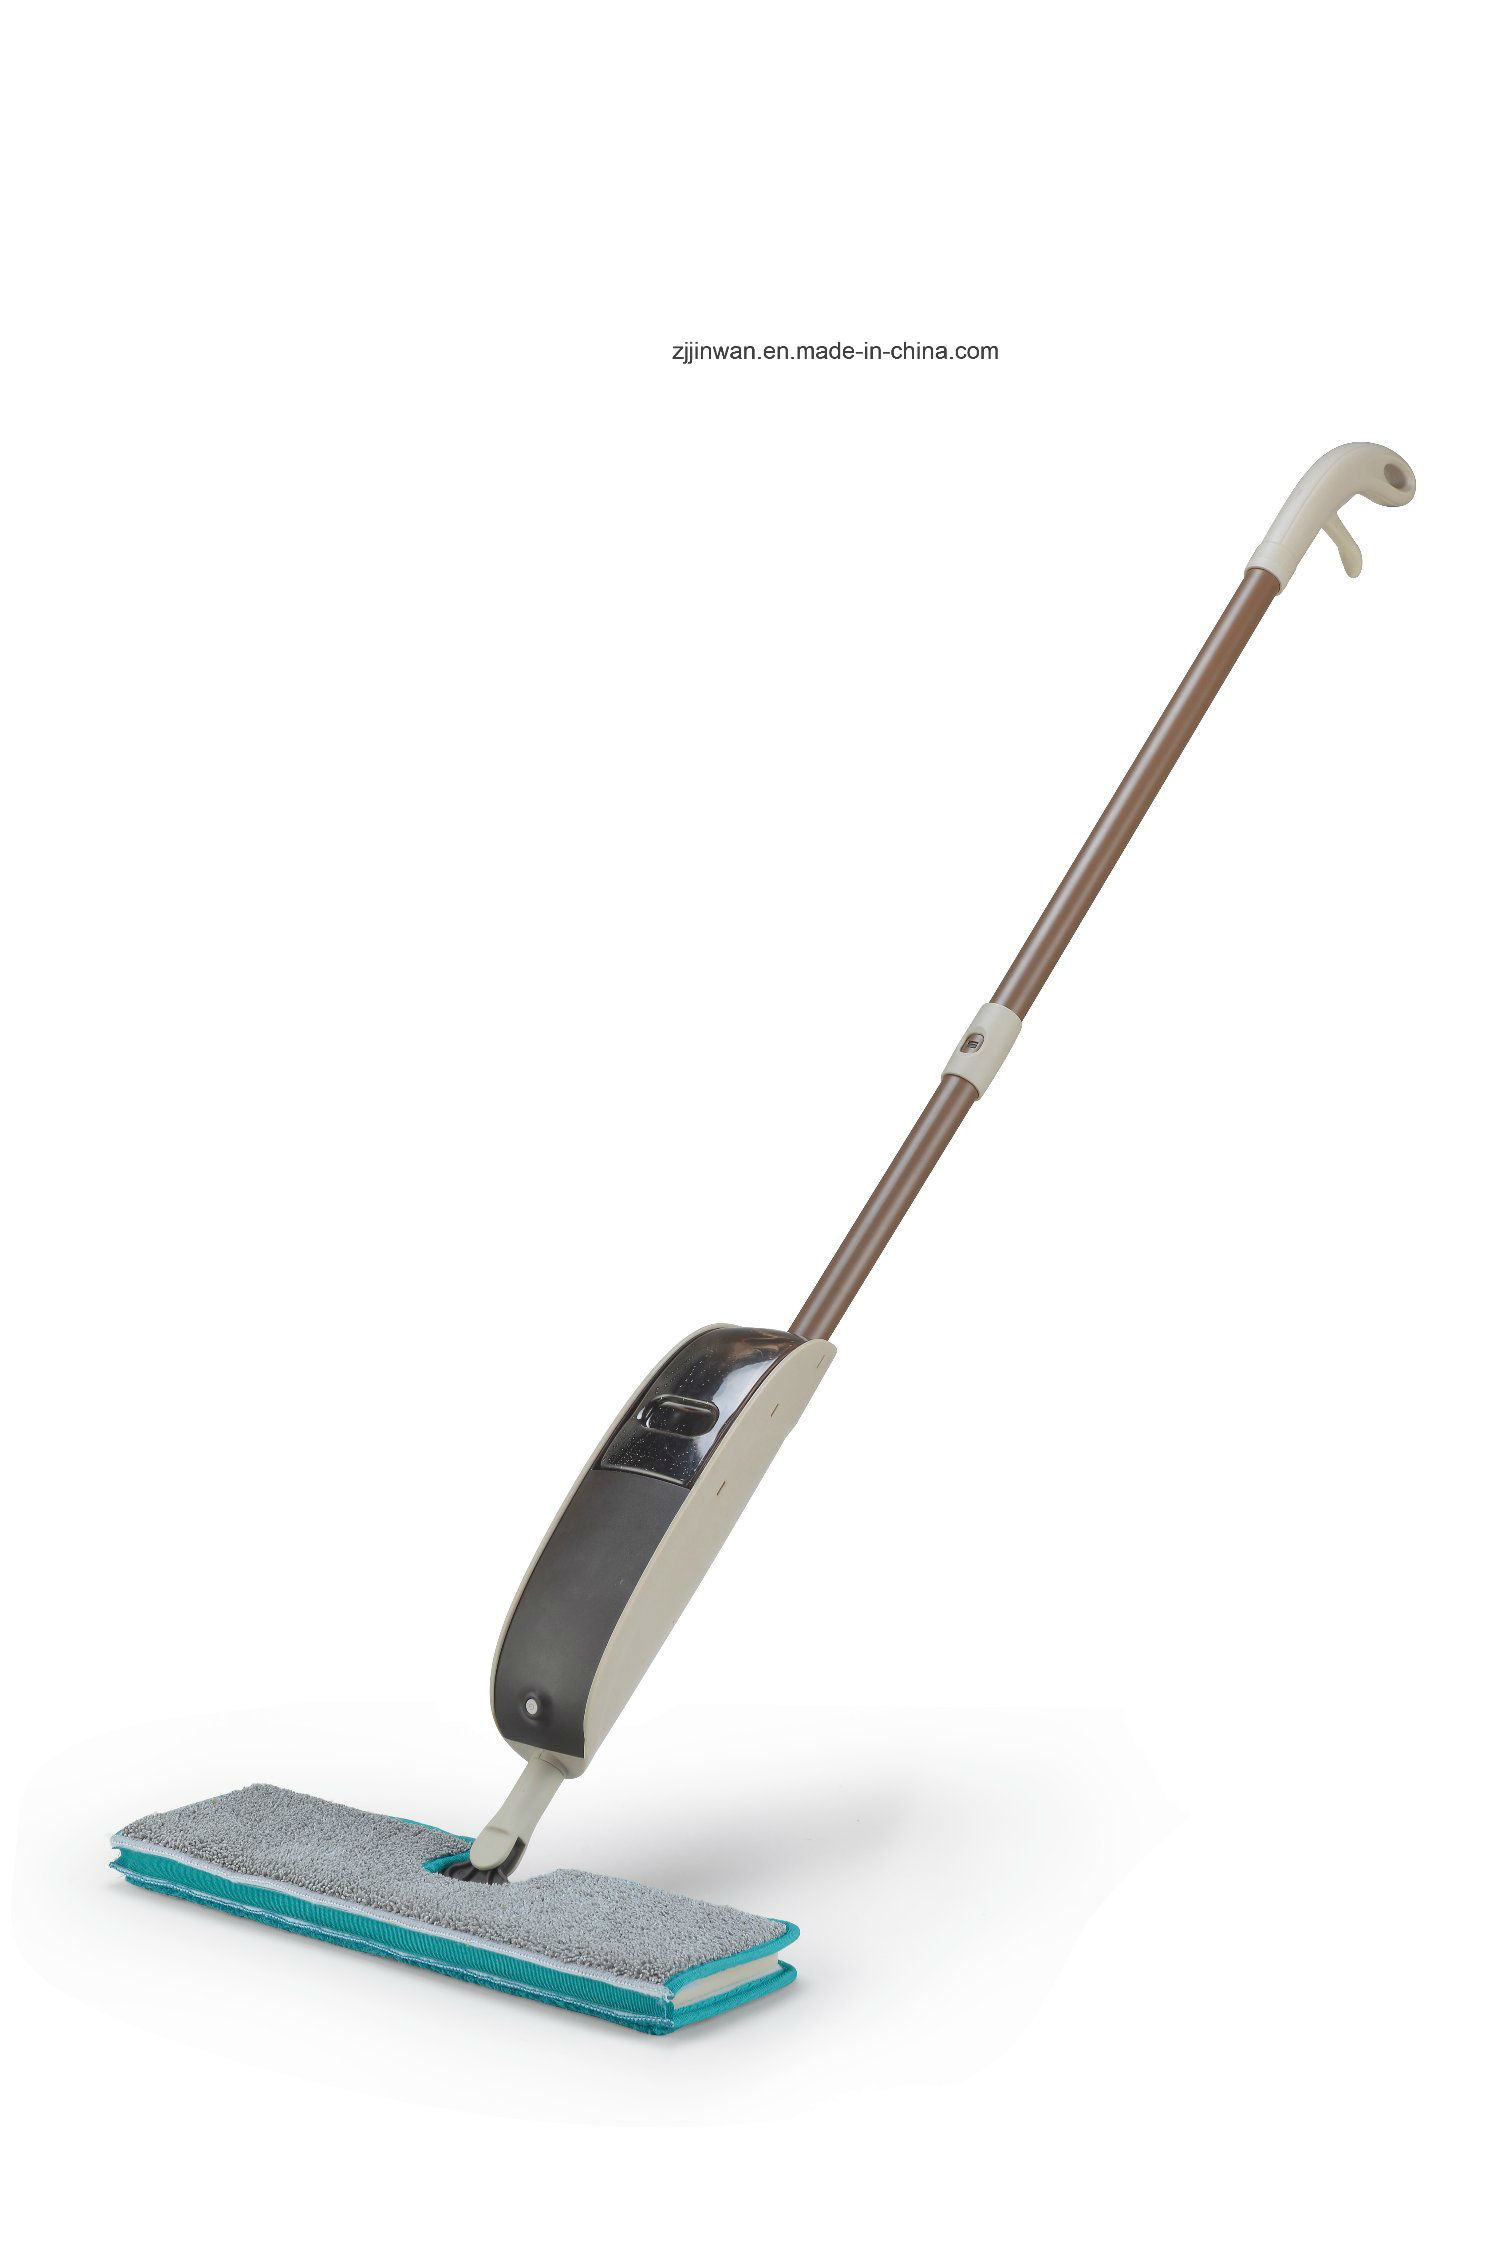 Unique, Multi Funcation. Doubel Side Use Spray Mop